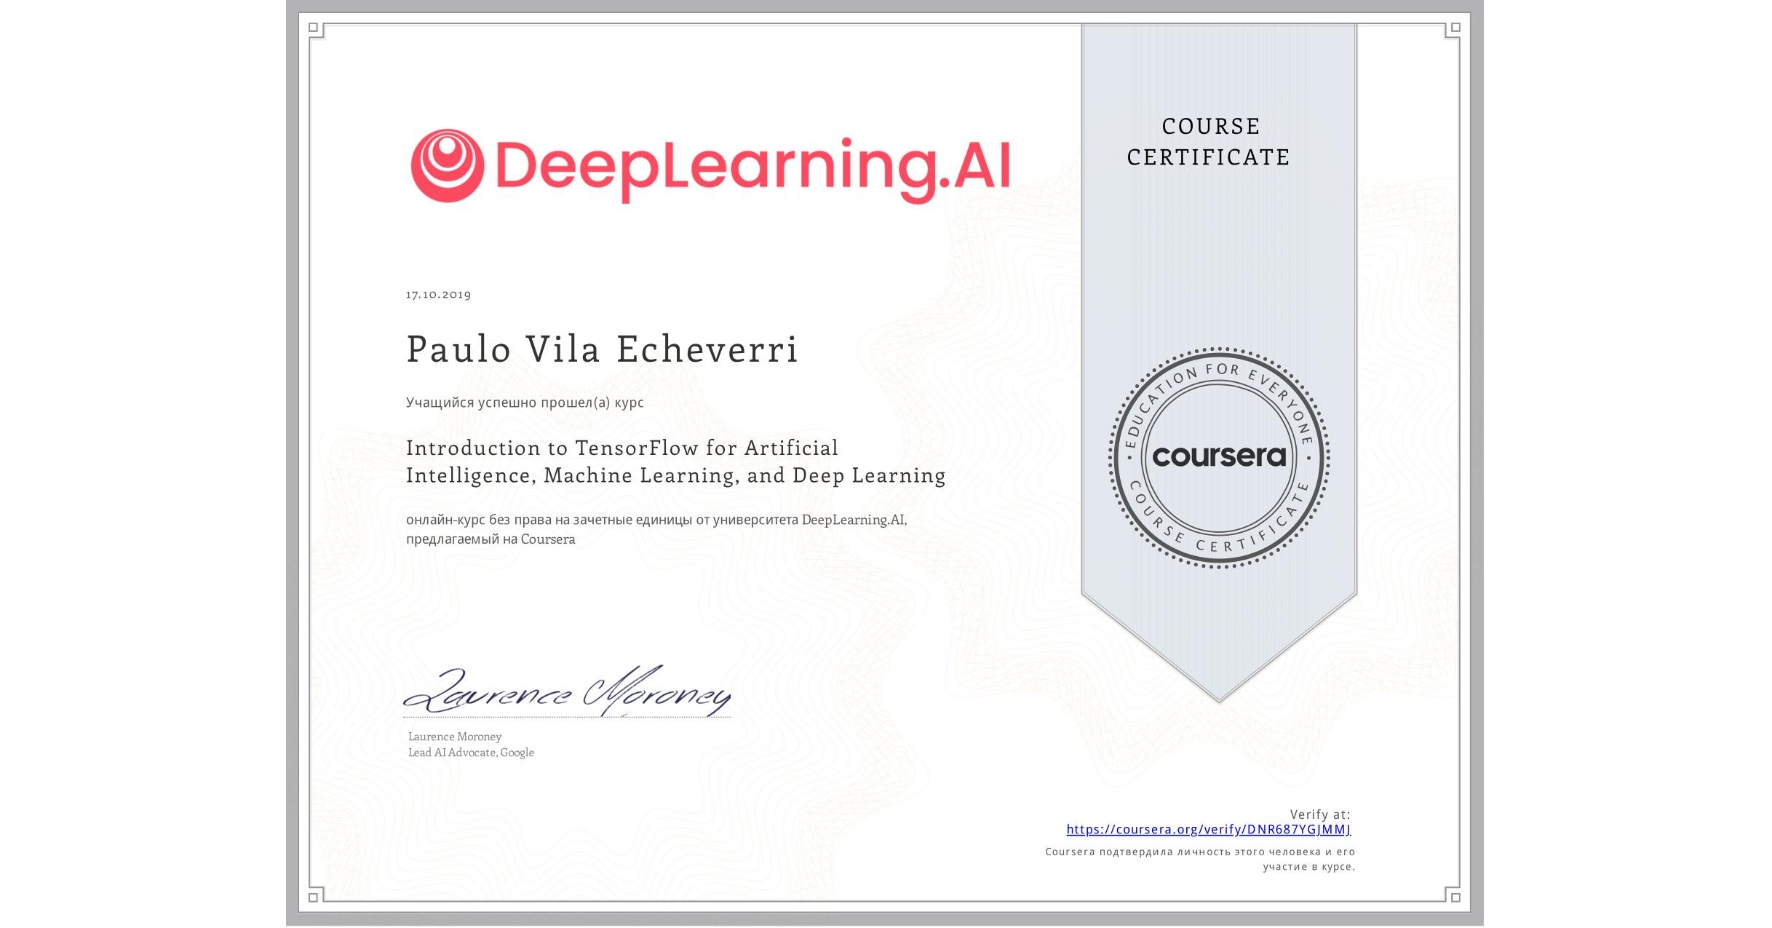 View certificate for Paulo Vila, Introduction to TensorFlow for Artificial Intelligence, Machine Learning, and Deep Learning, an online non-credit course authorized by DeepLearning.AI and offered through Coursera